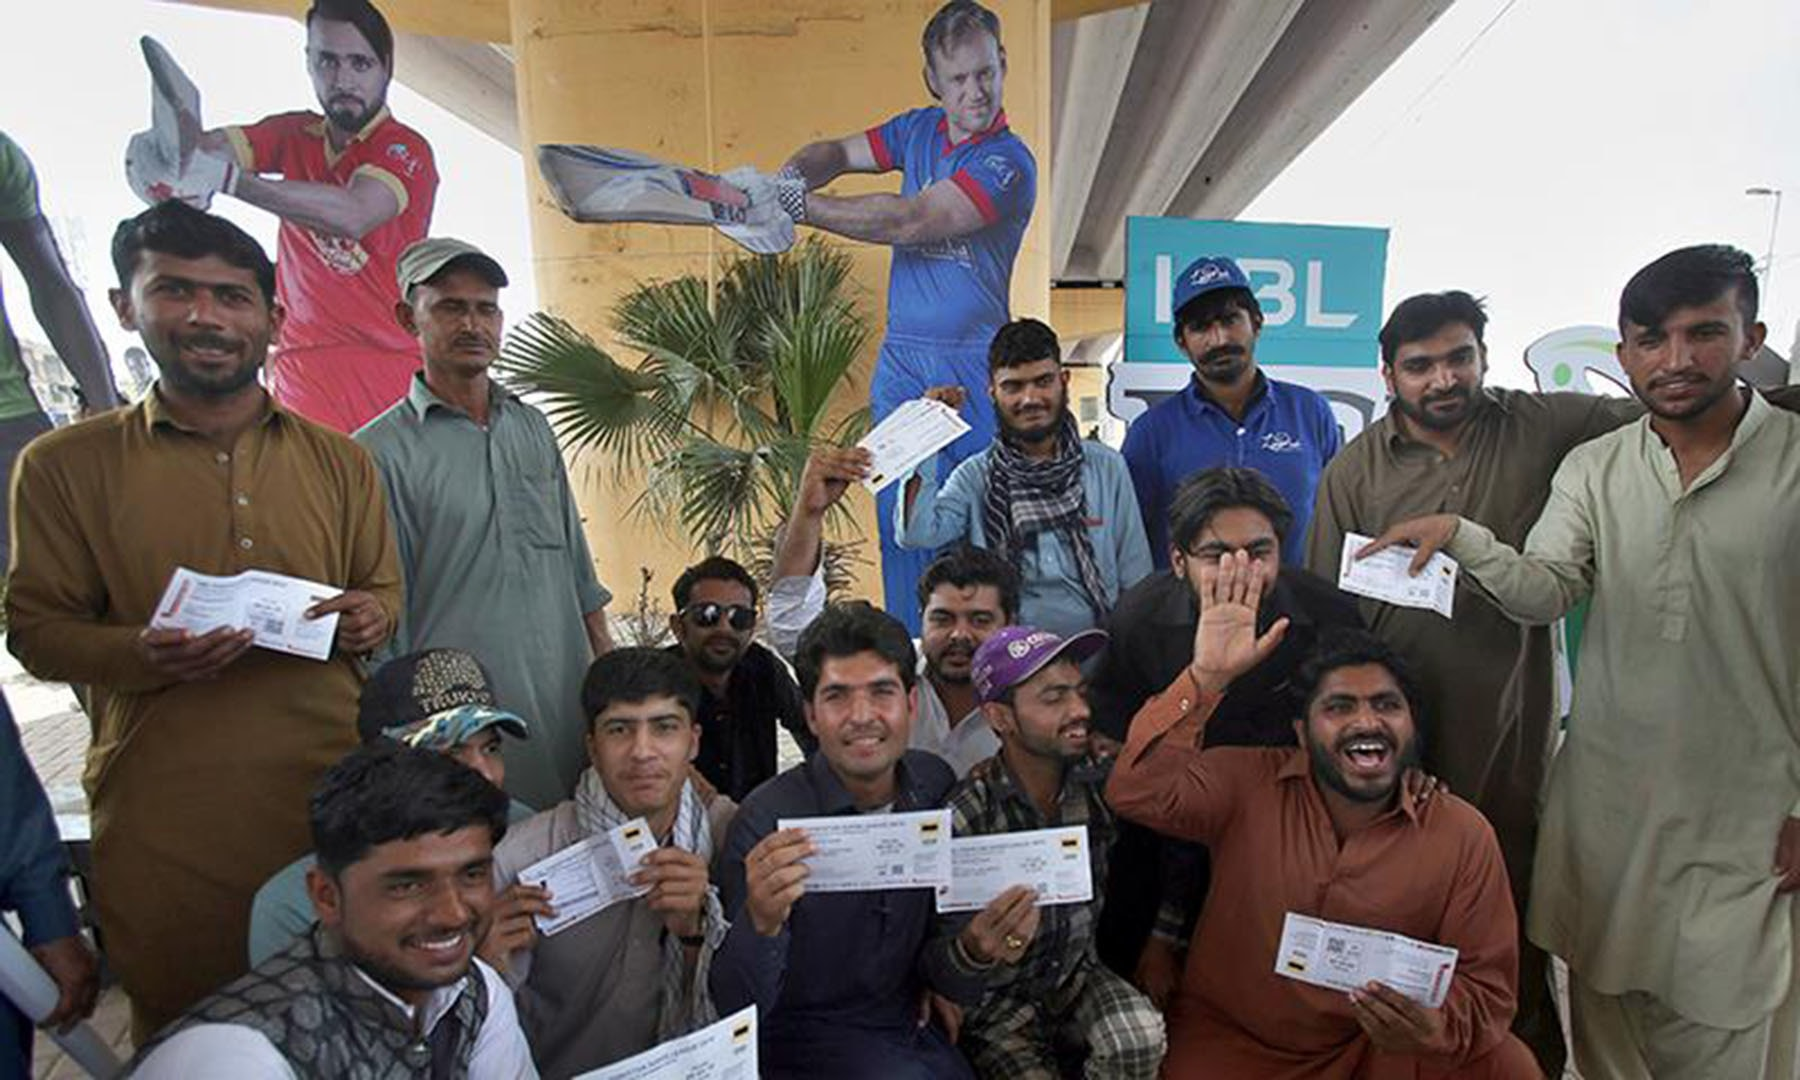 Fans show their tickets upon arrival at National Stadium ahead of the PSL match on Saturday. — AP